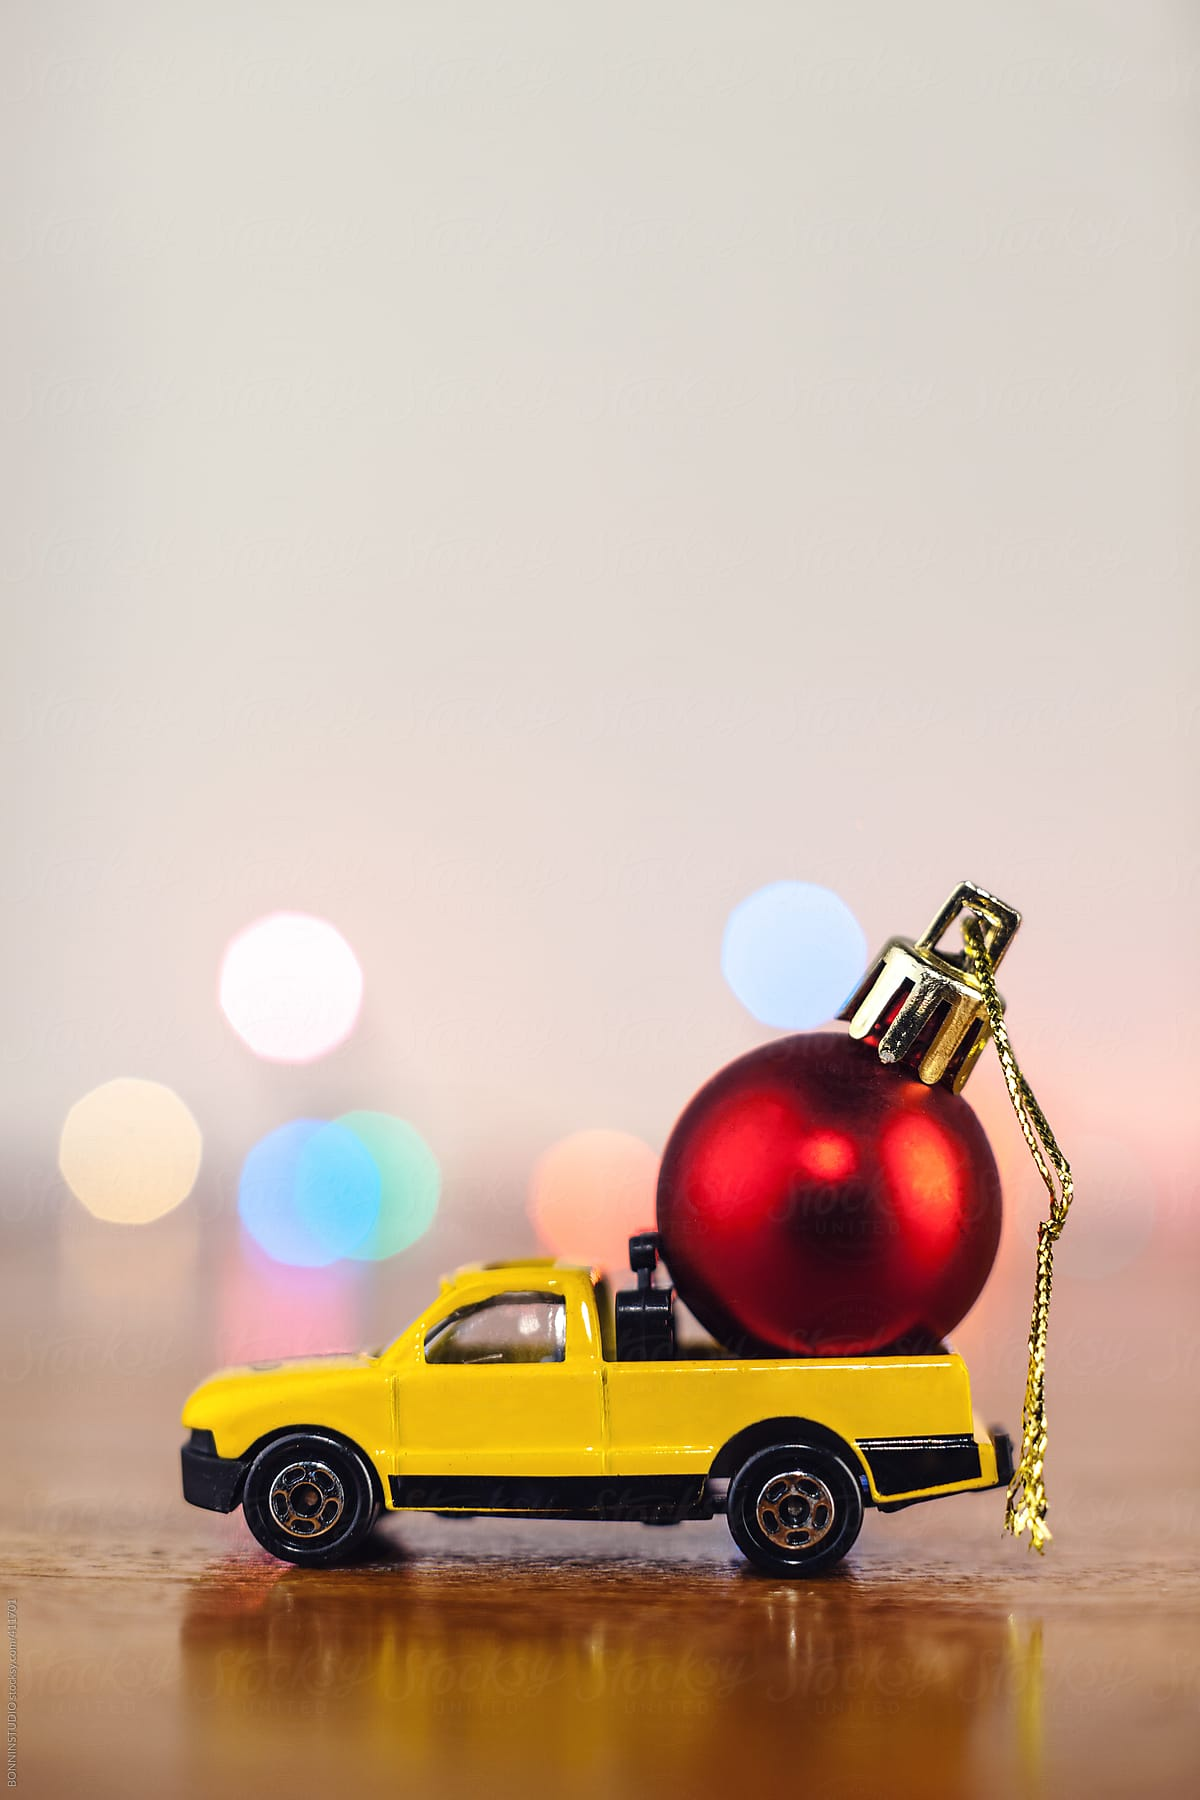 Christmas Red Ball On Yellow Toy Car Stocksy United